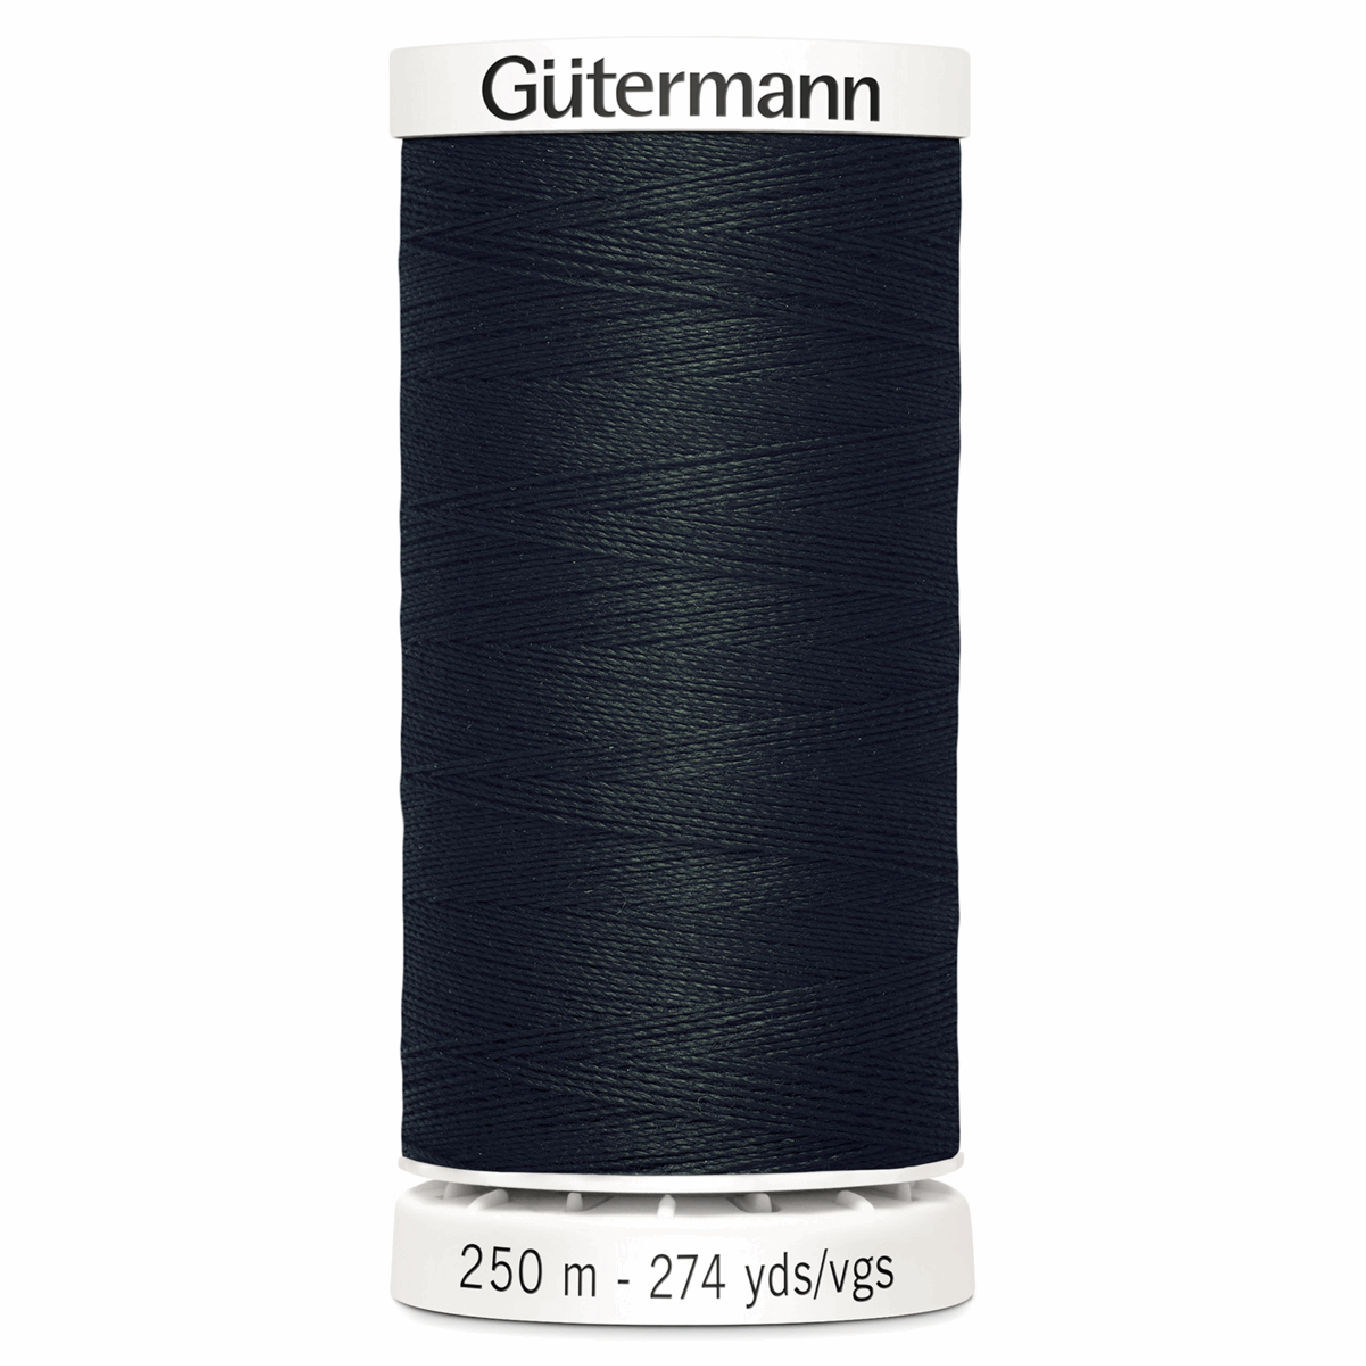 Image of Gutermann Sew All Thread 250m